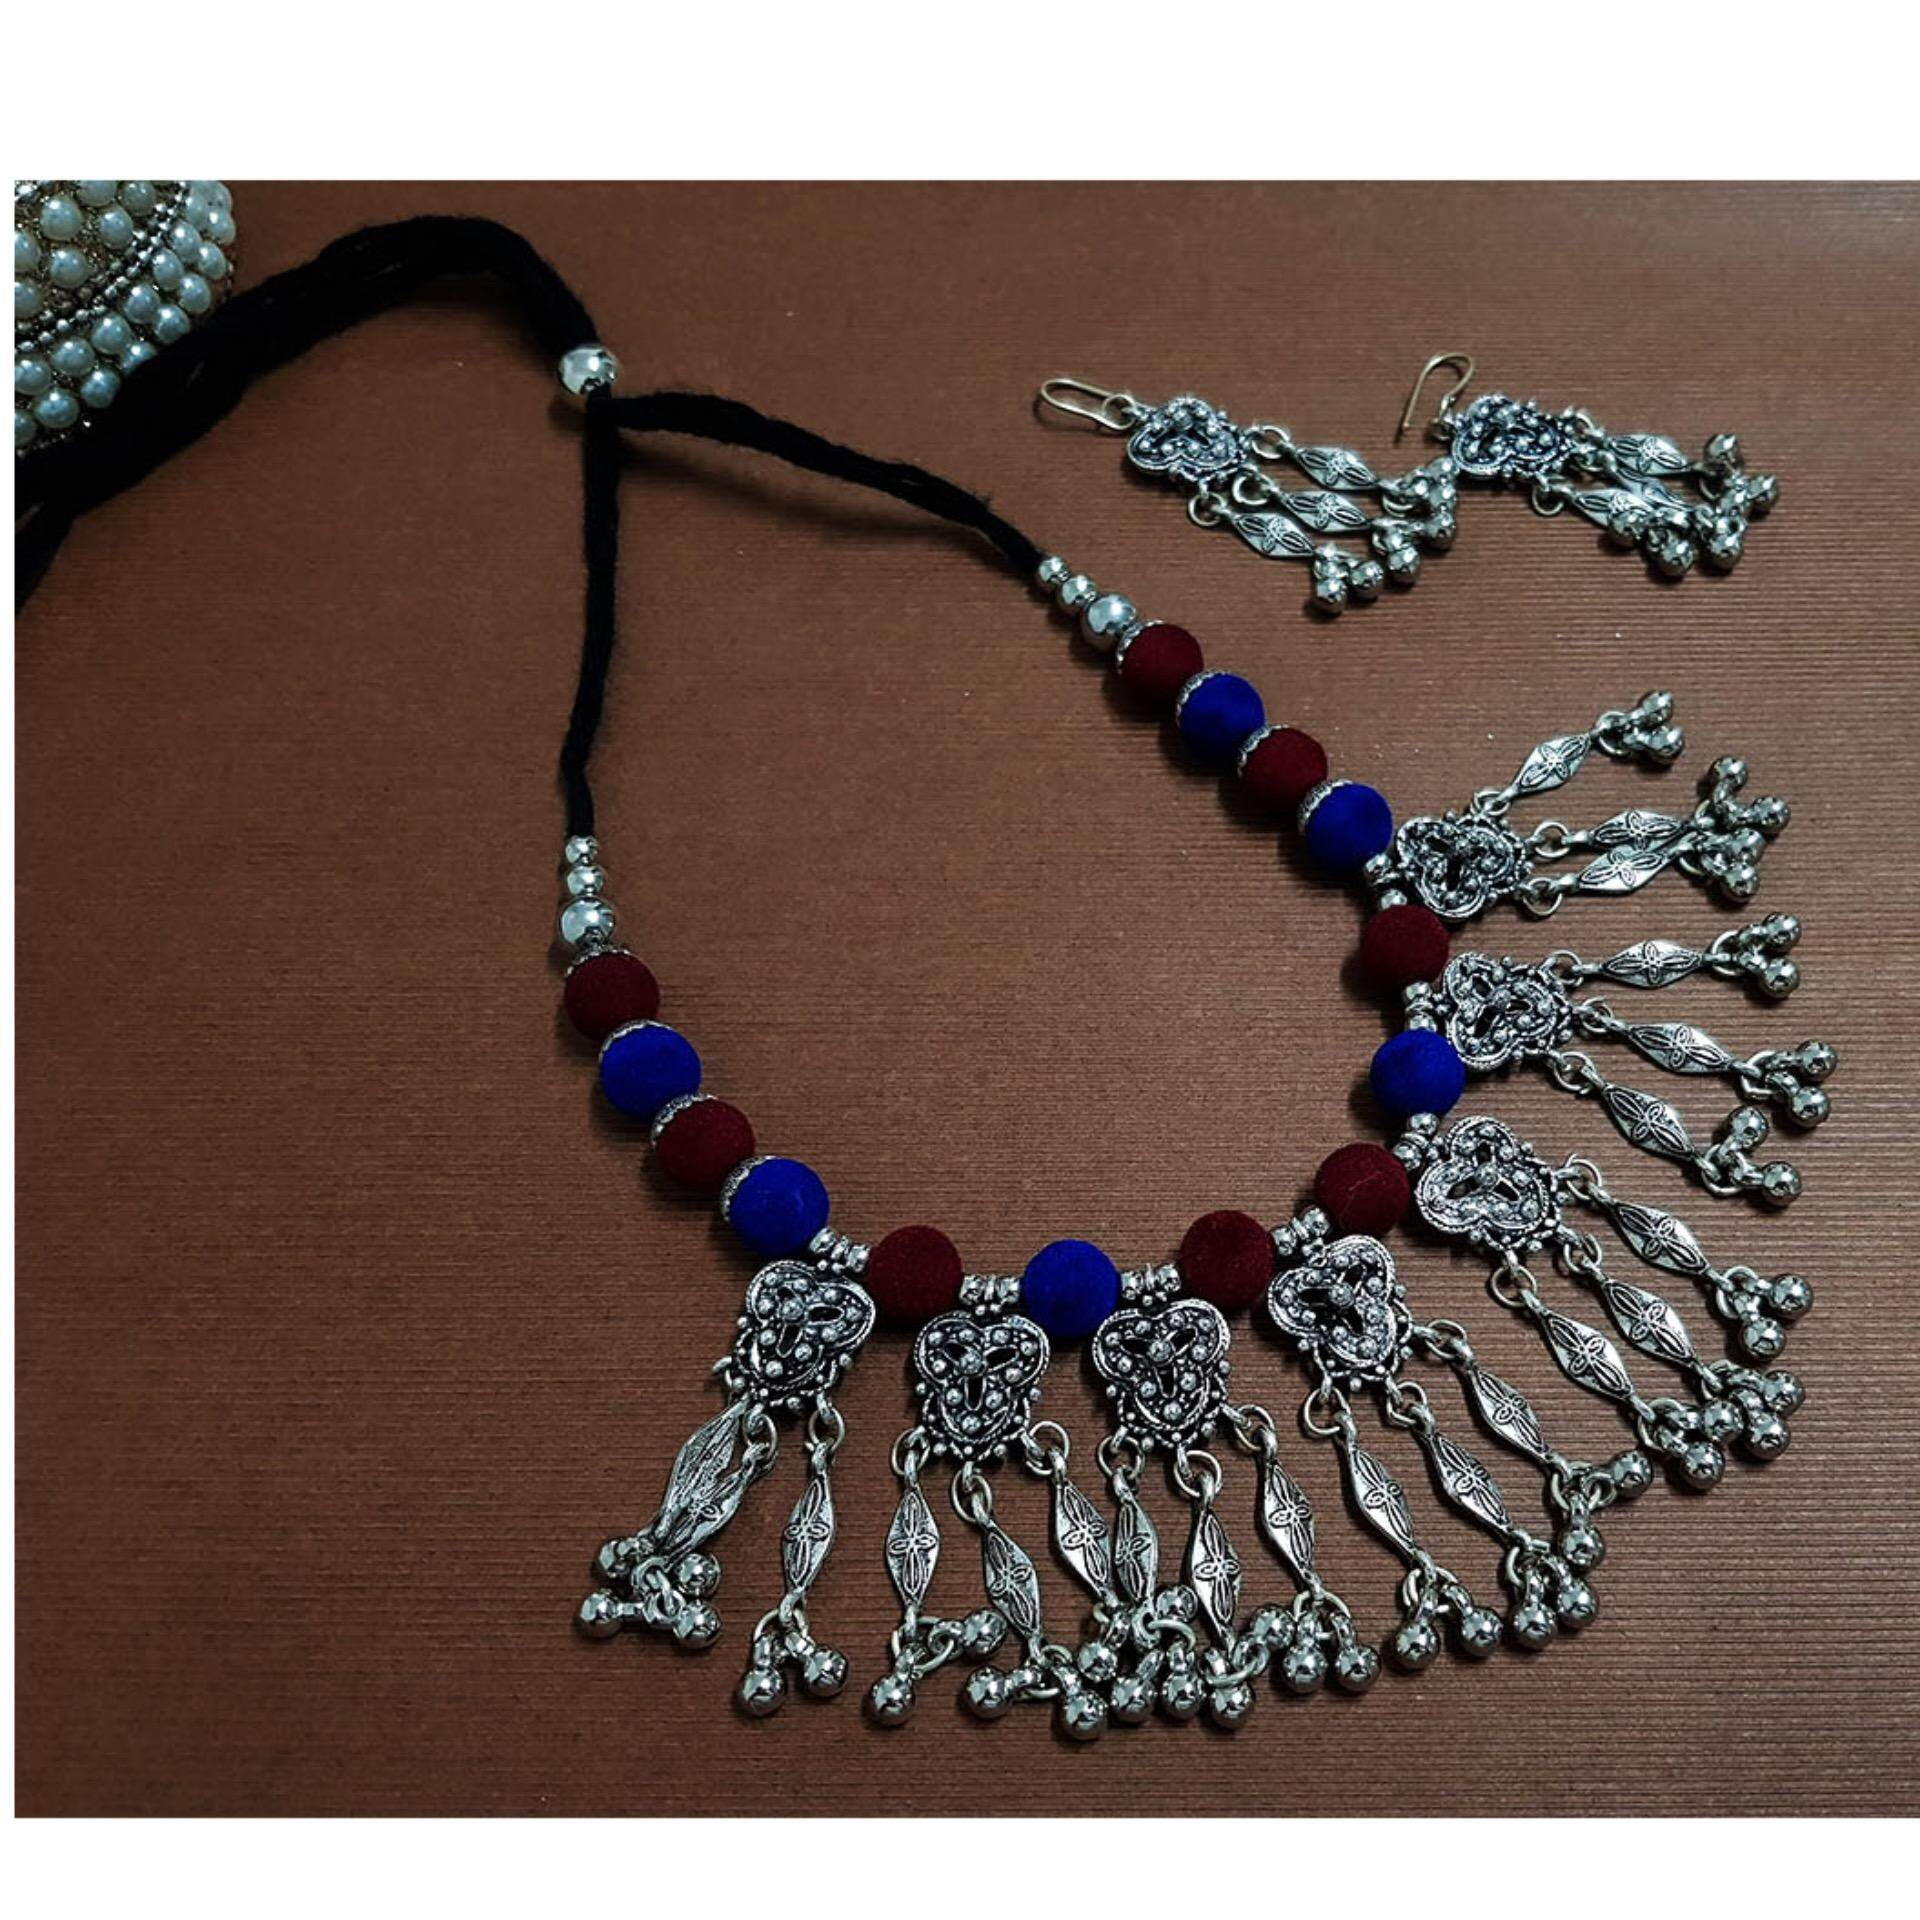 Antique German Silver Oxidised Plated Tribal Thread Jewelry Necklace  Earring Set